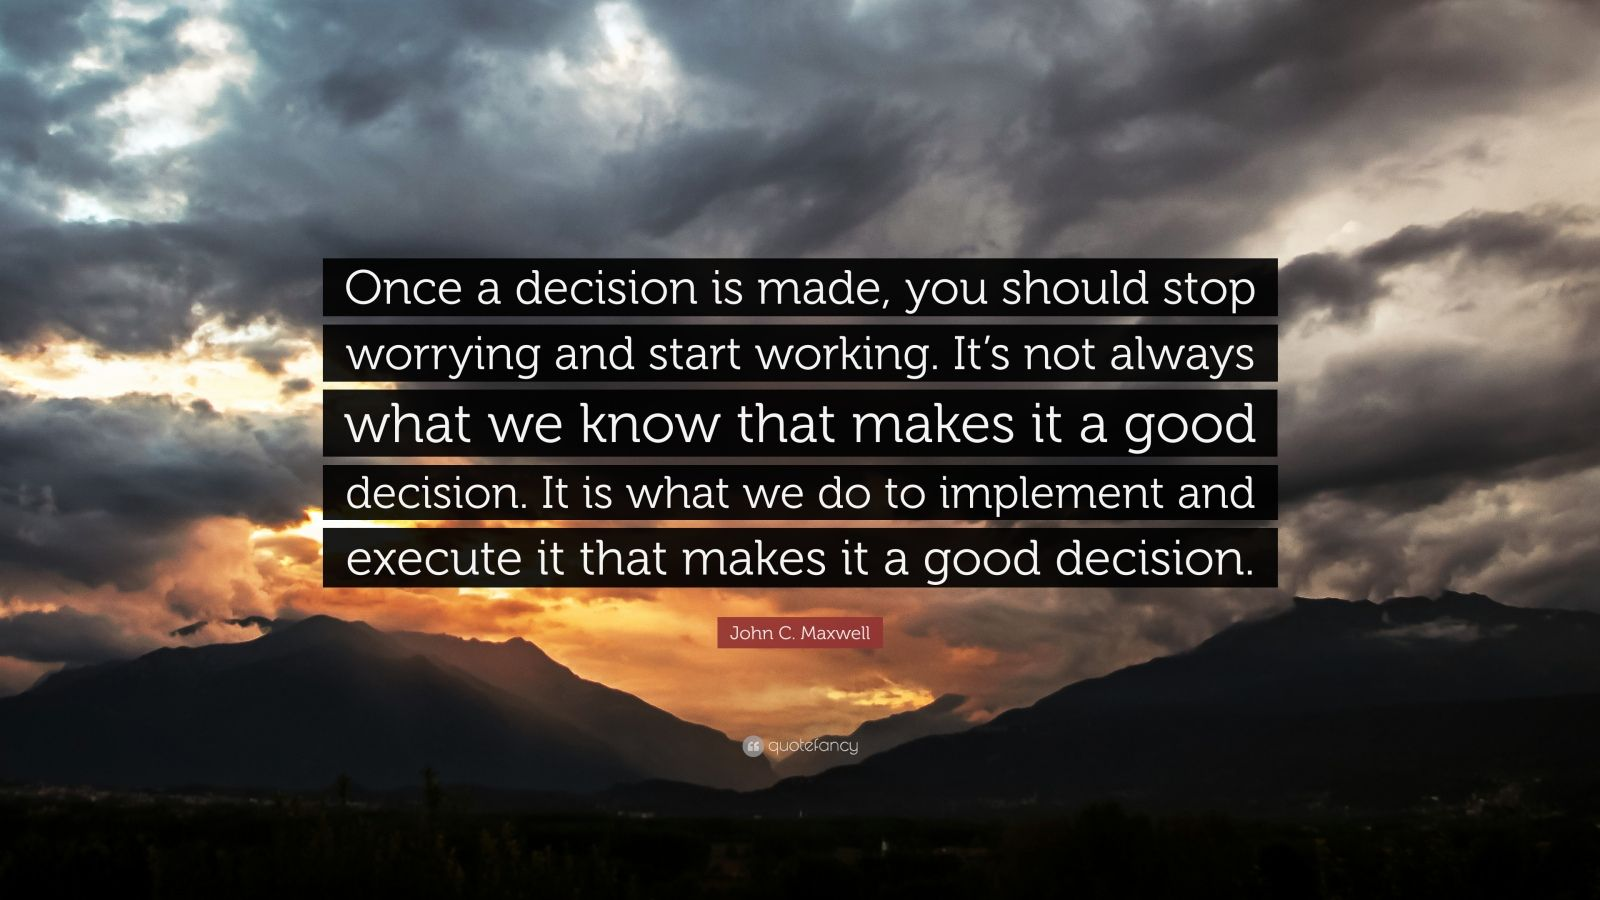 "Decision Quotes: ""Once a decision is made, you should stop worrying and start working. It's not always what we know that makes it a good decision. It is what we do to implement and execute it that makes it a good decision."" — John C. Maxwell"